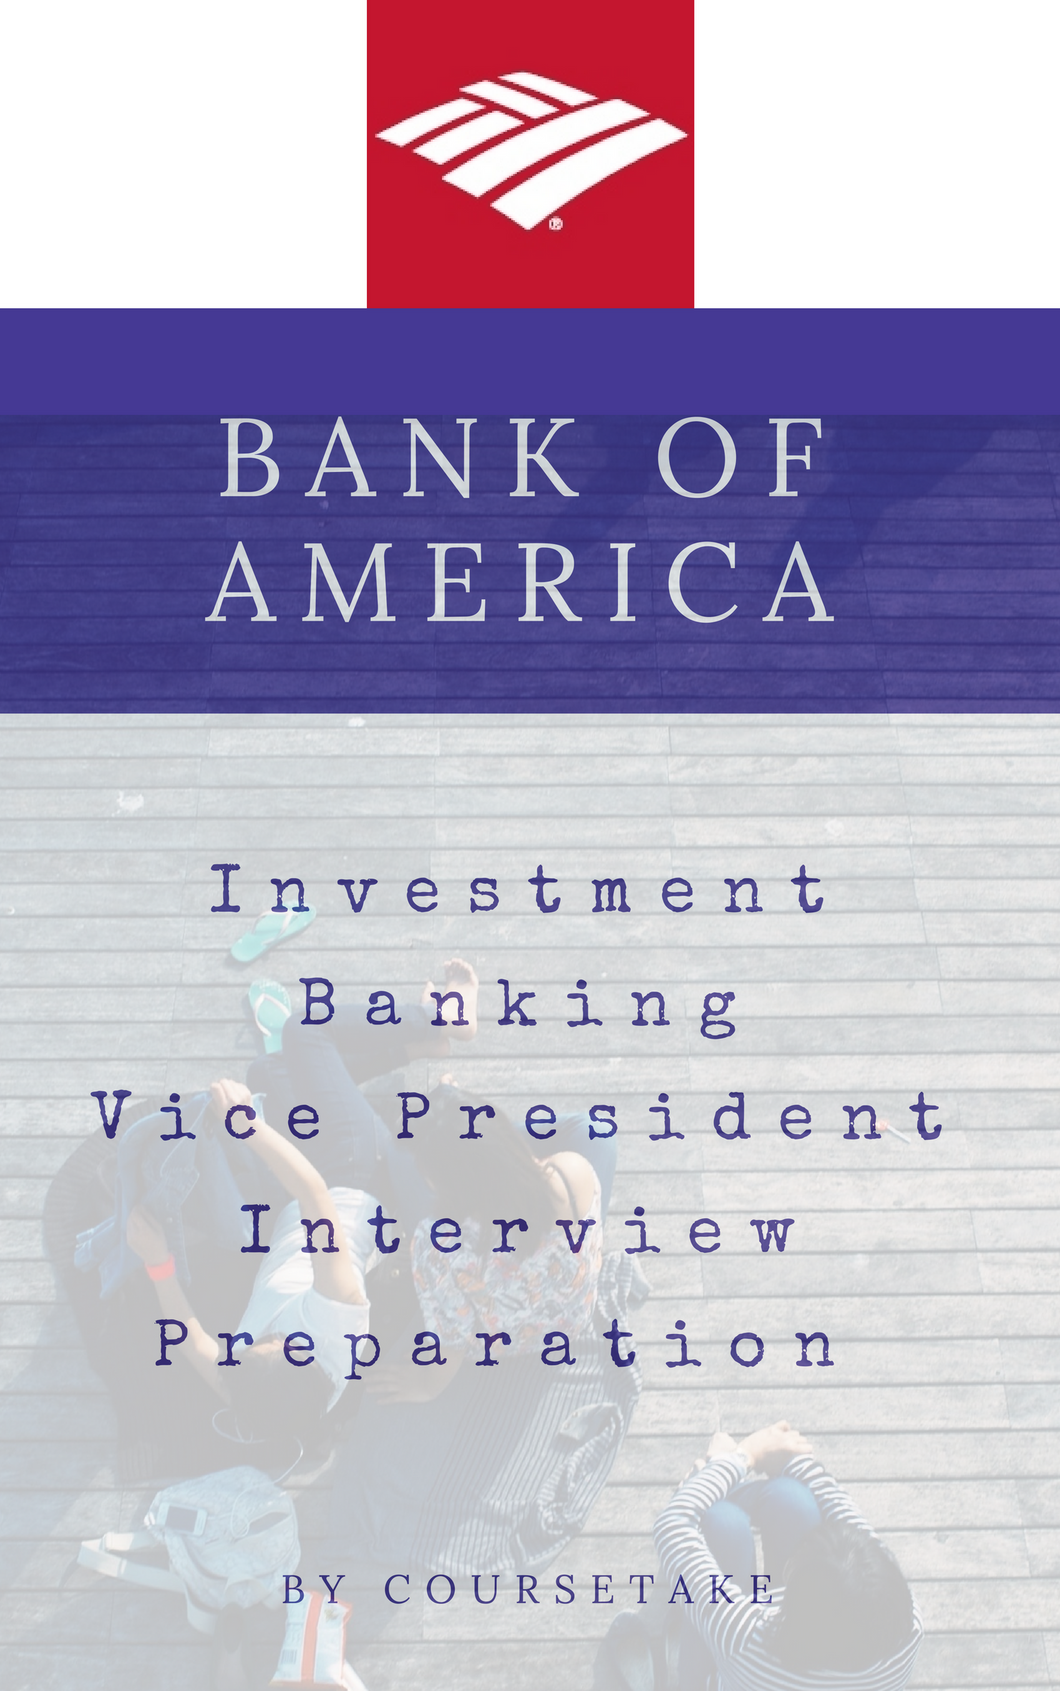 Bank of America Investment Banking Vice President Interview Preparation Study Guide